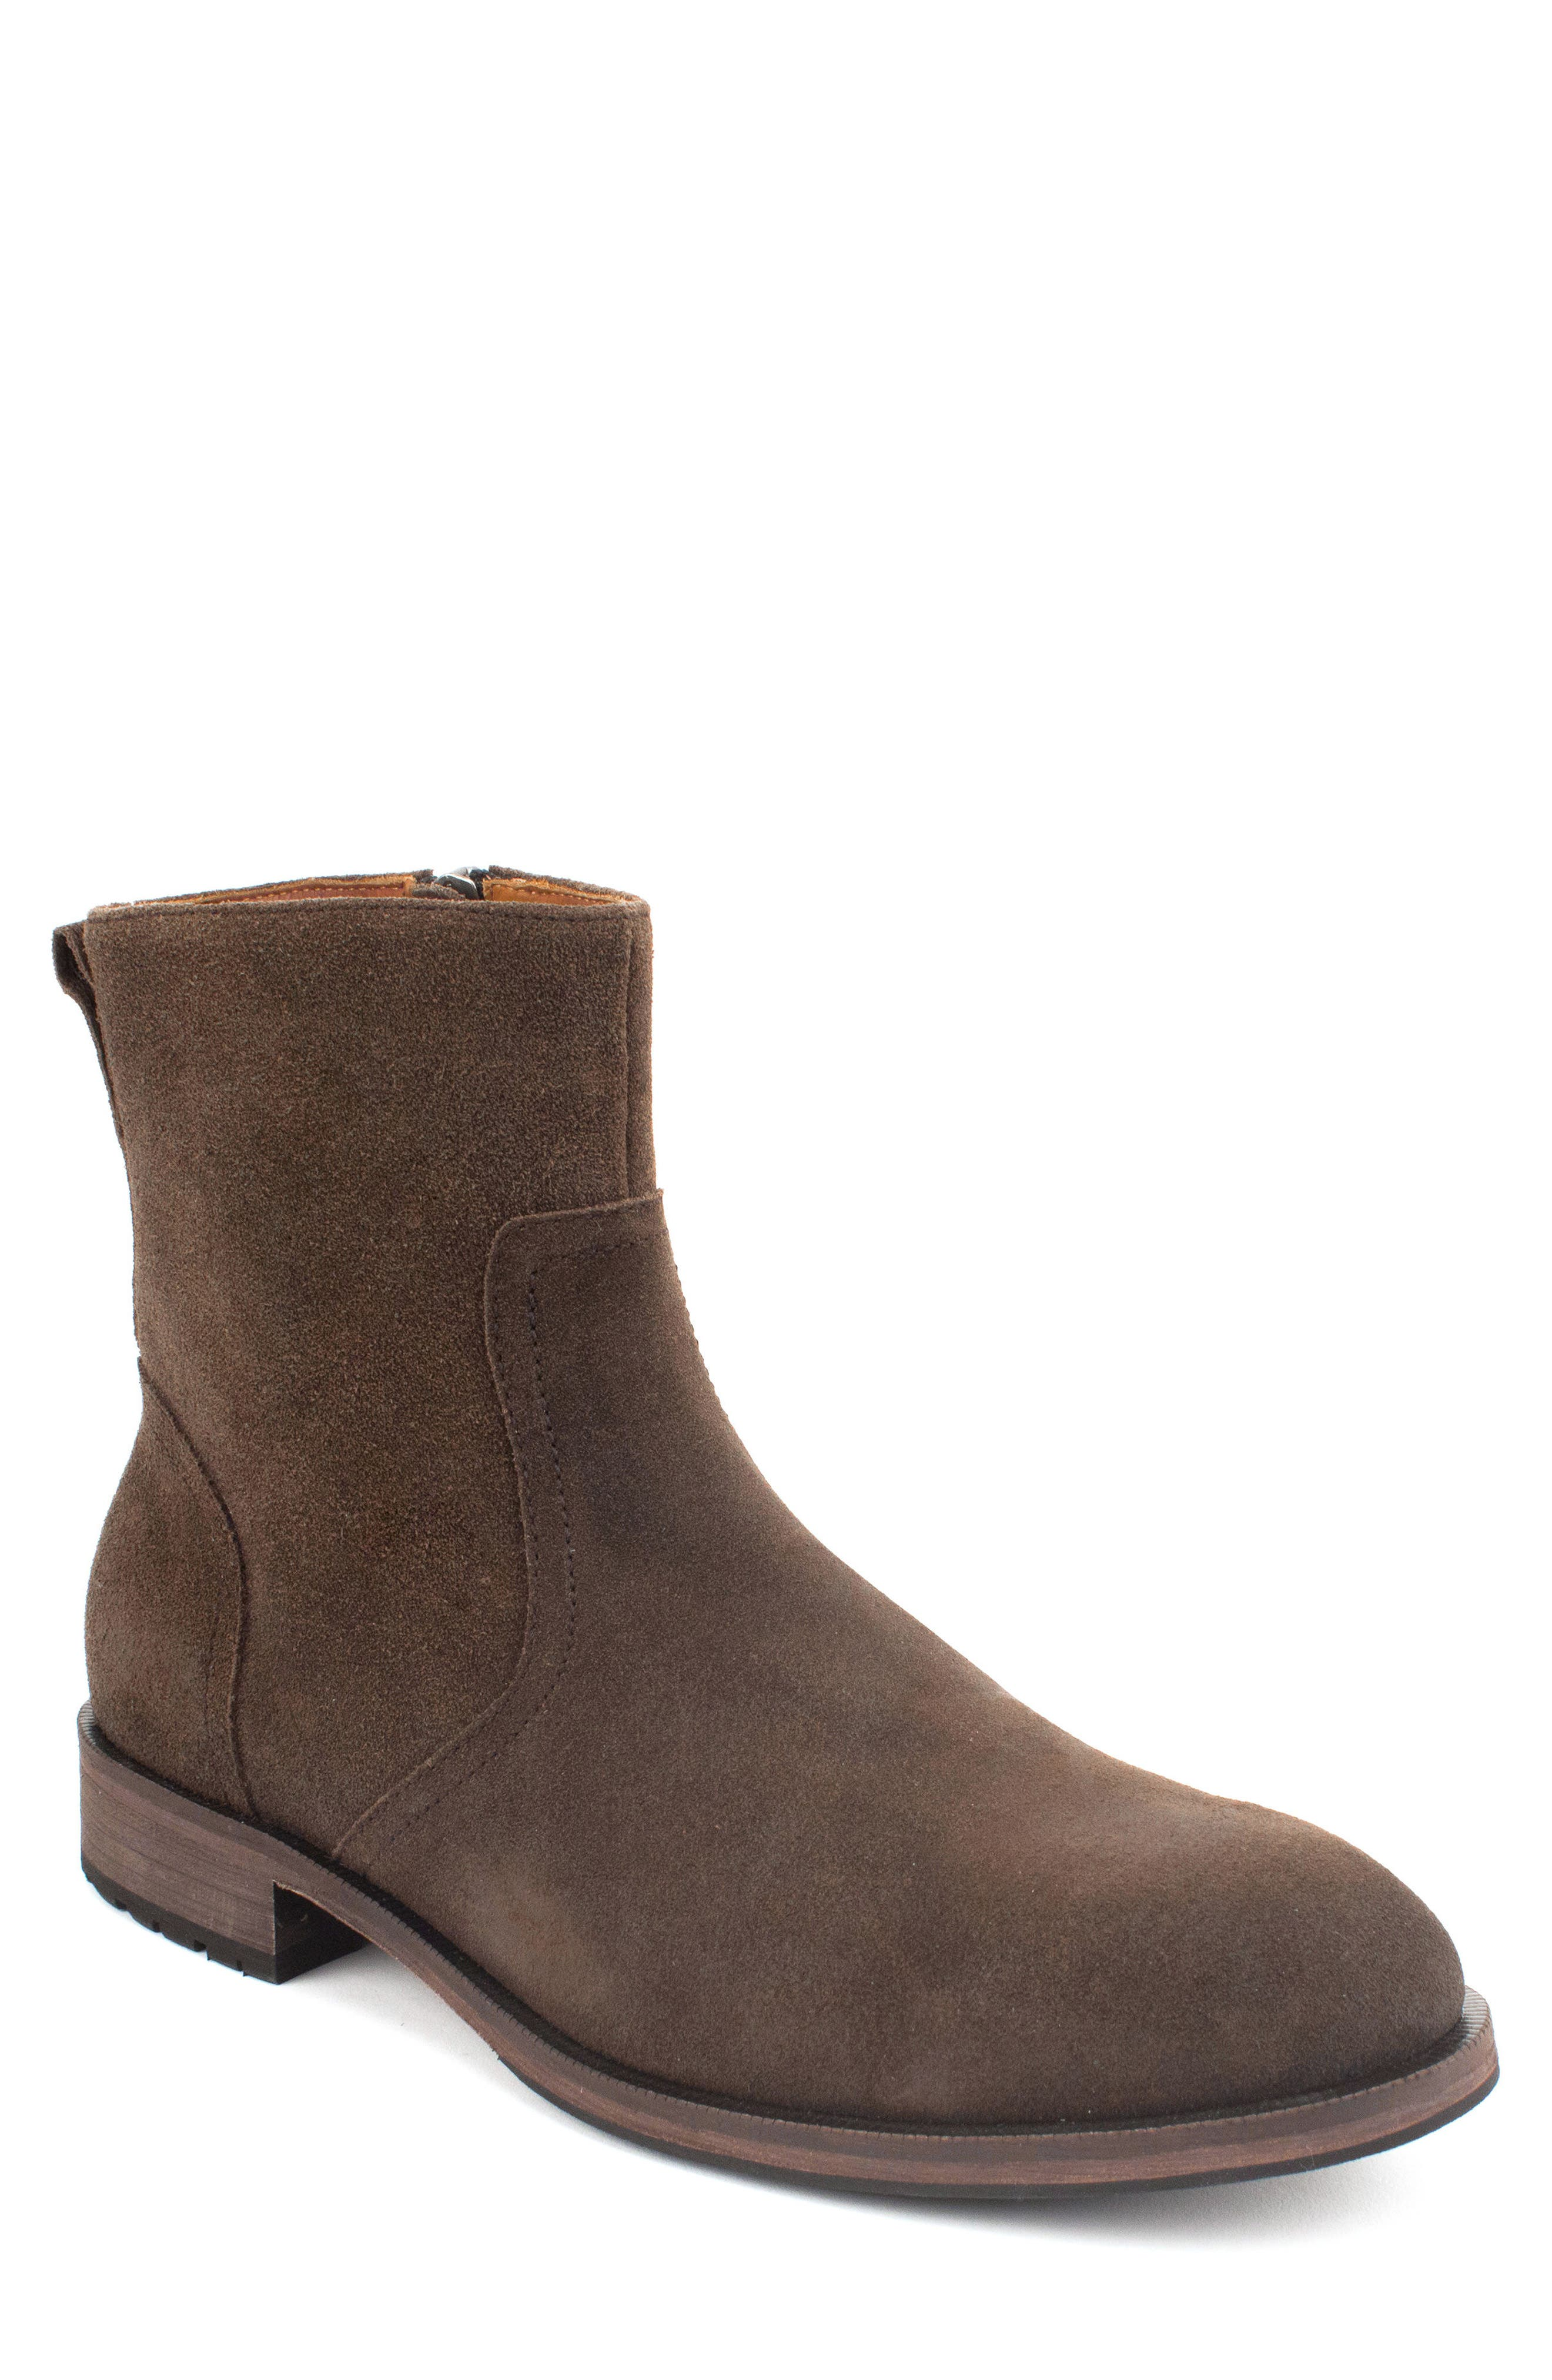 GORDON RUSH Men'S Fayette Nubuck Leather Boots in Chocolate Suede